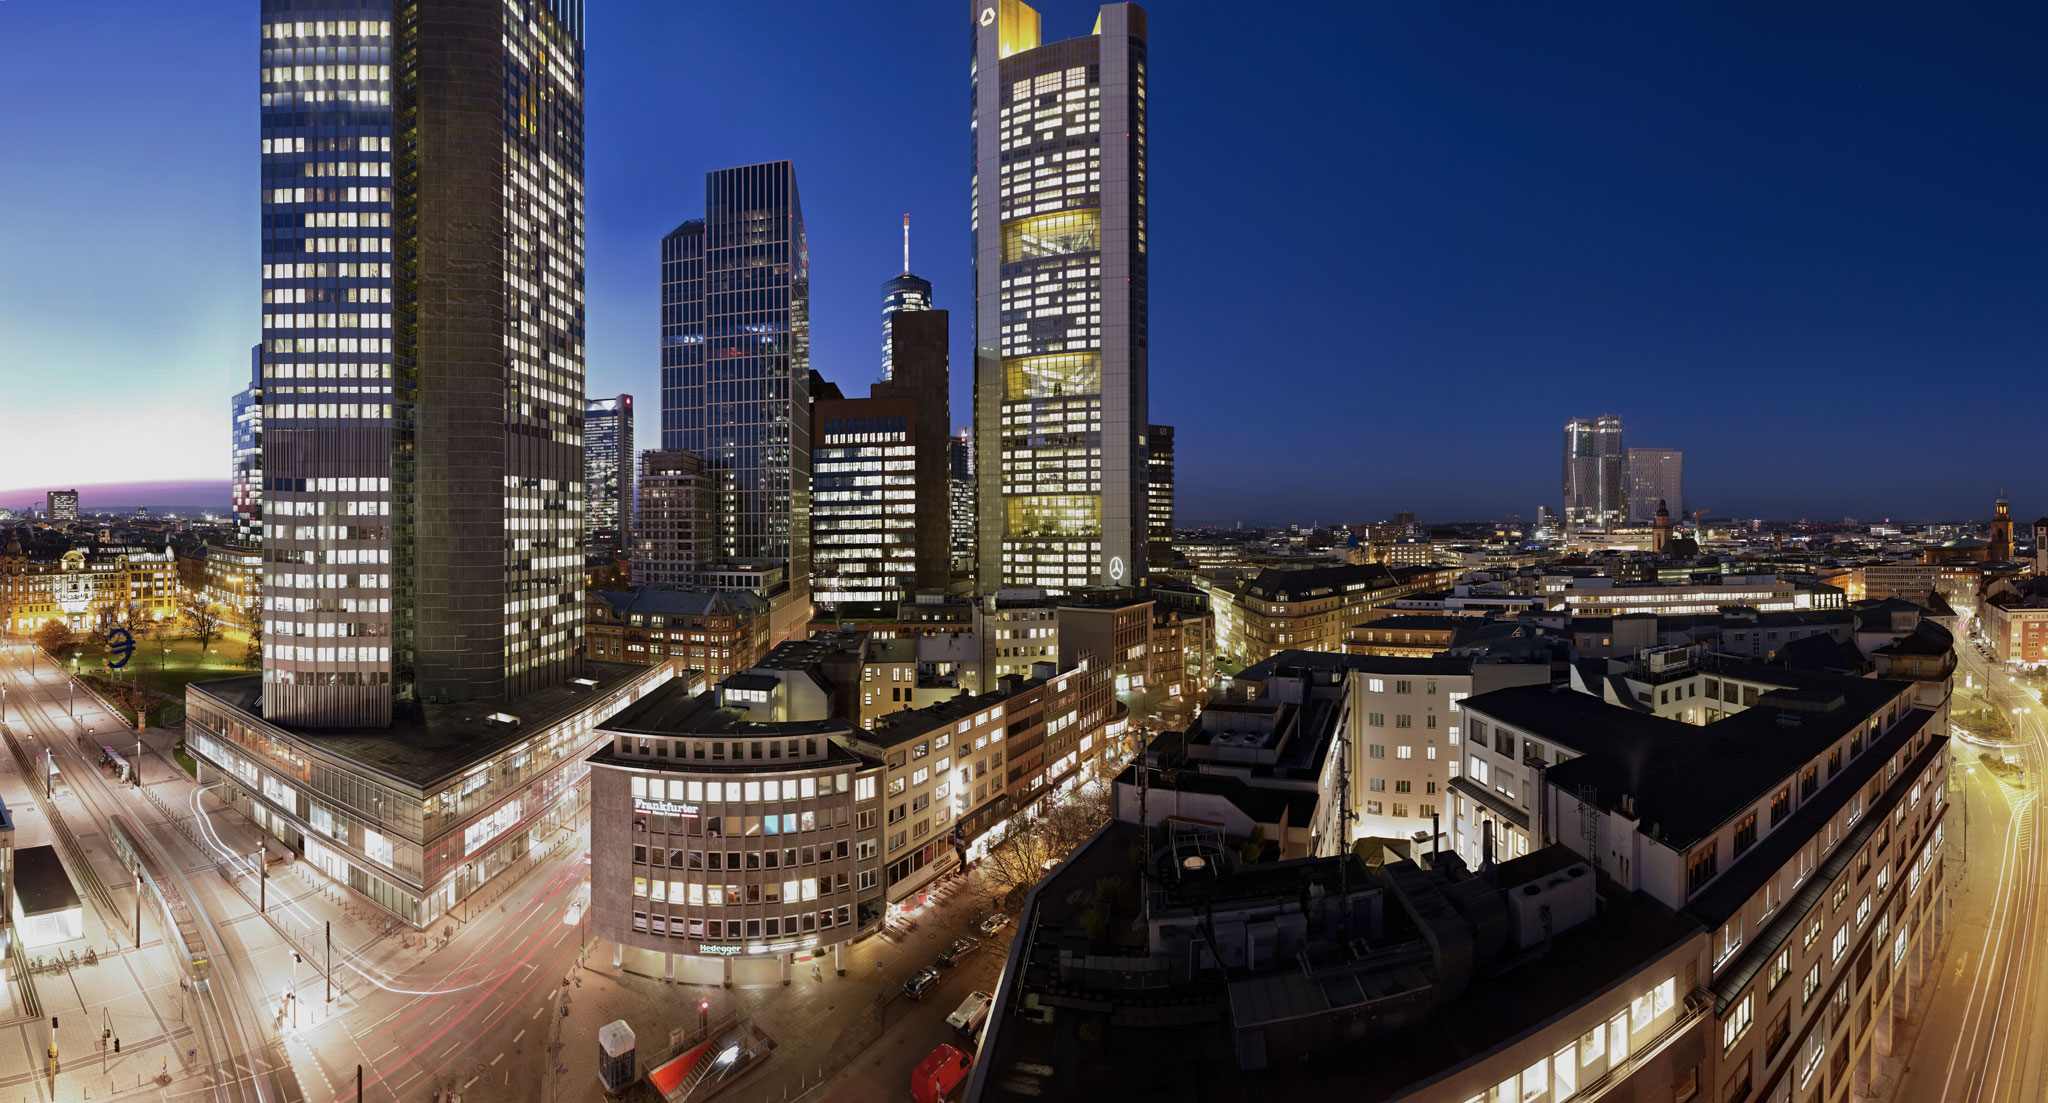 Skycrapers of Frankfurt am Main at night